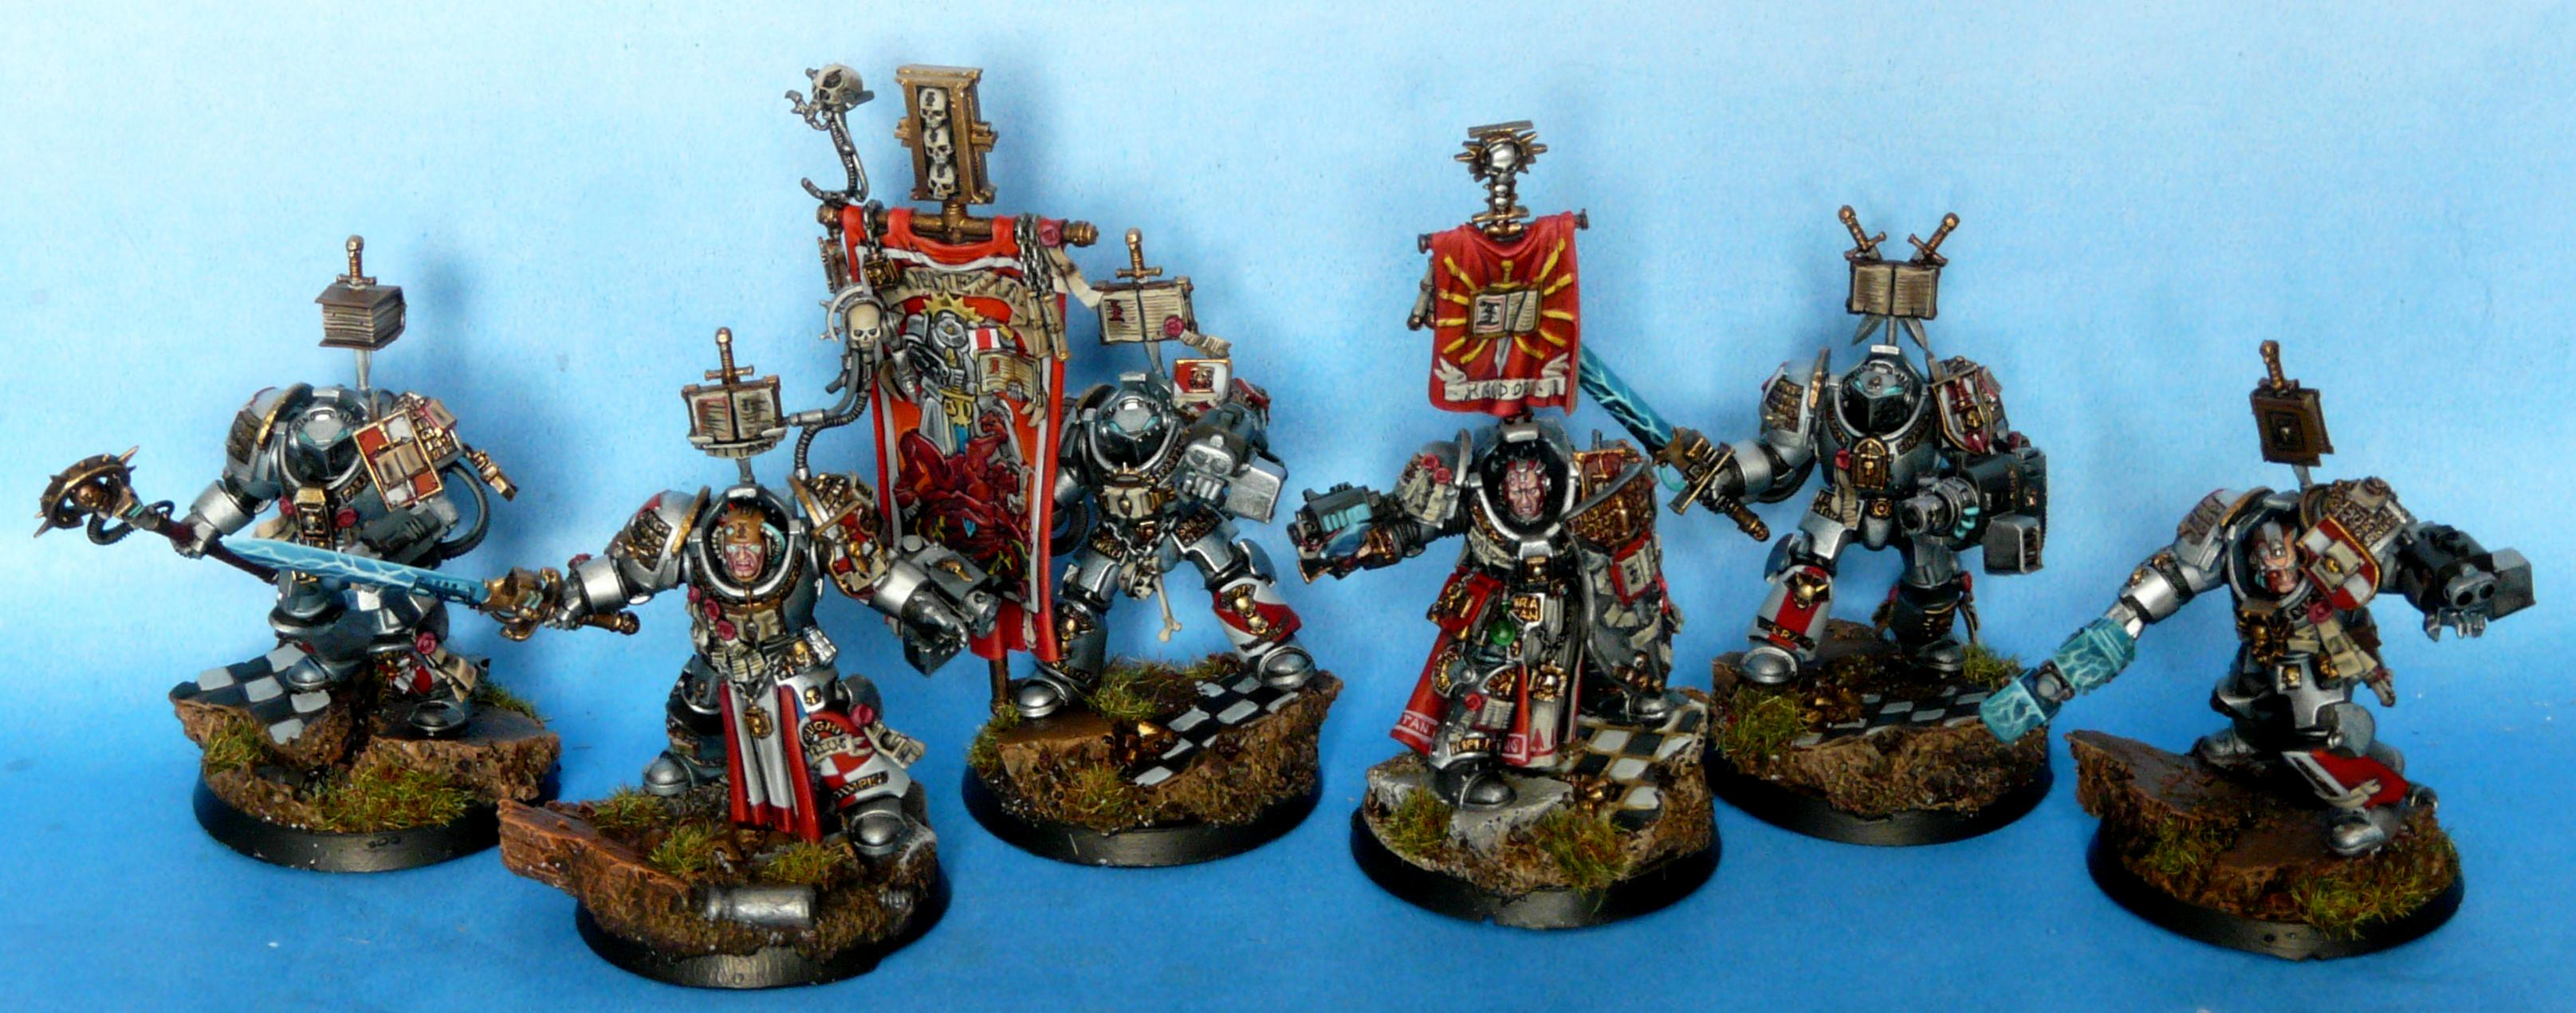 Grey Knights, Inquisition, Inquisitor, Terminator Armor